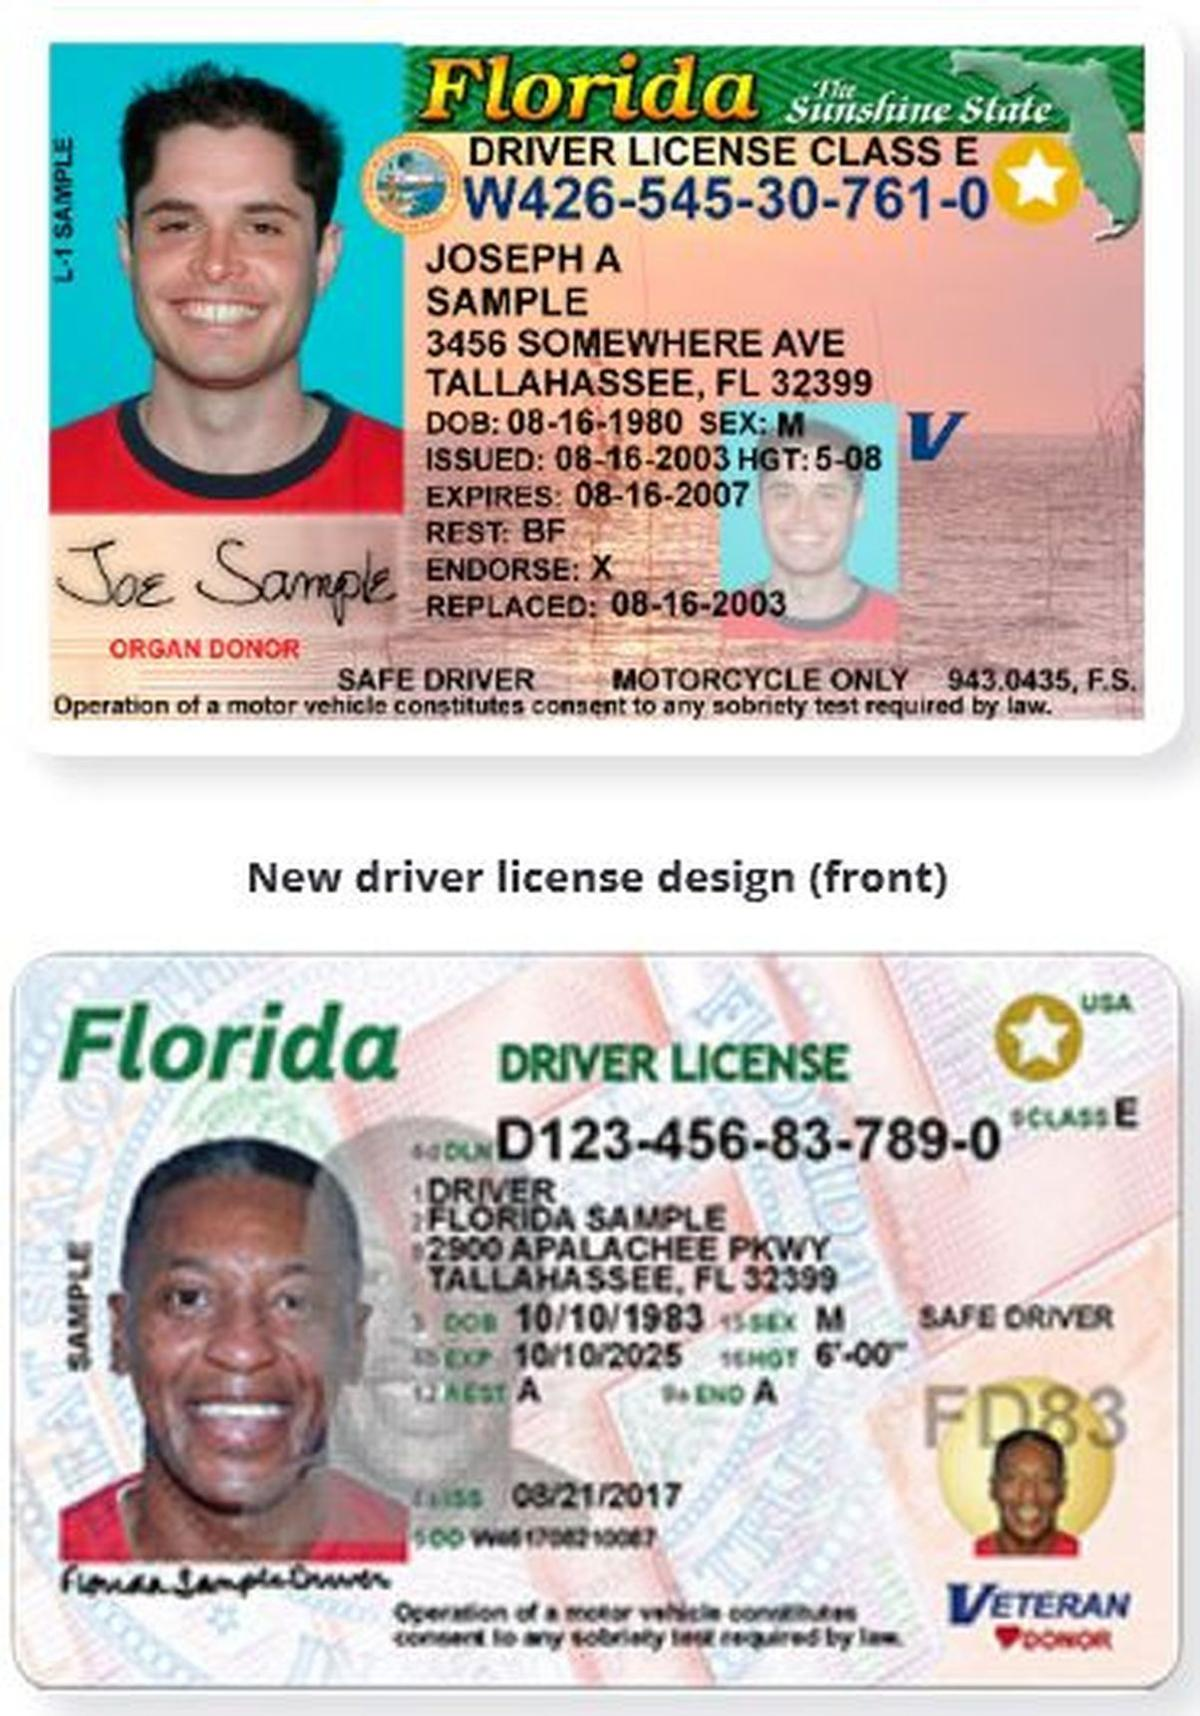 Old and new Florida licenses